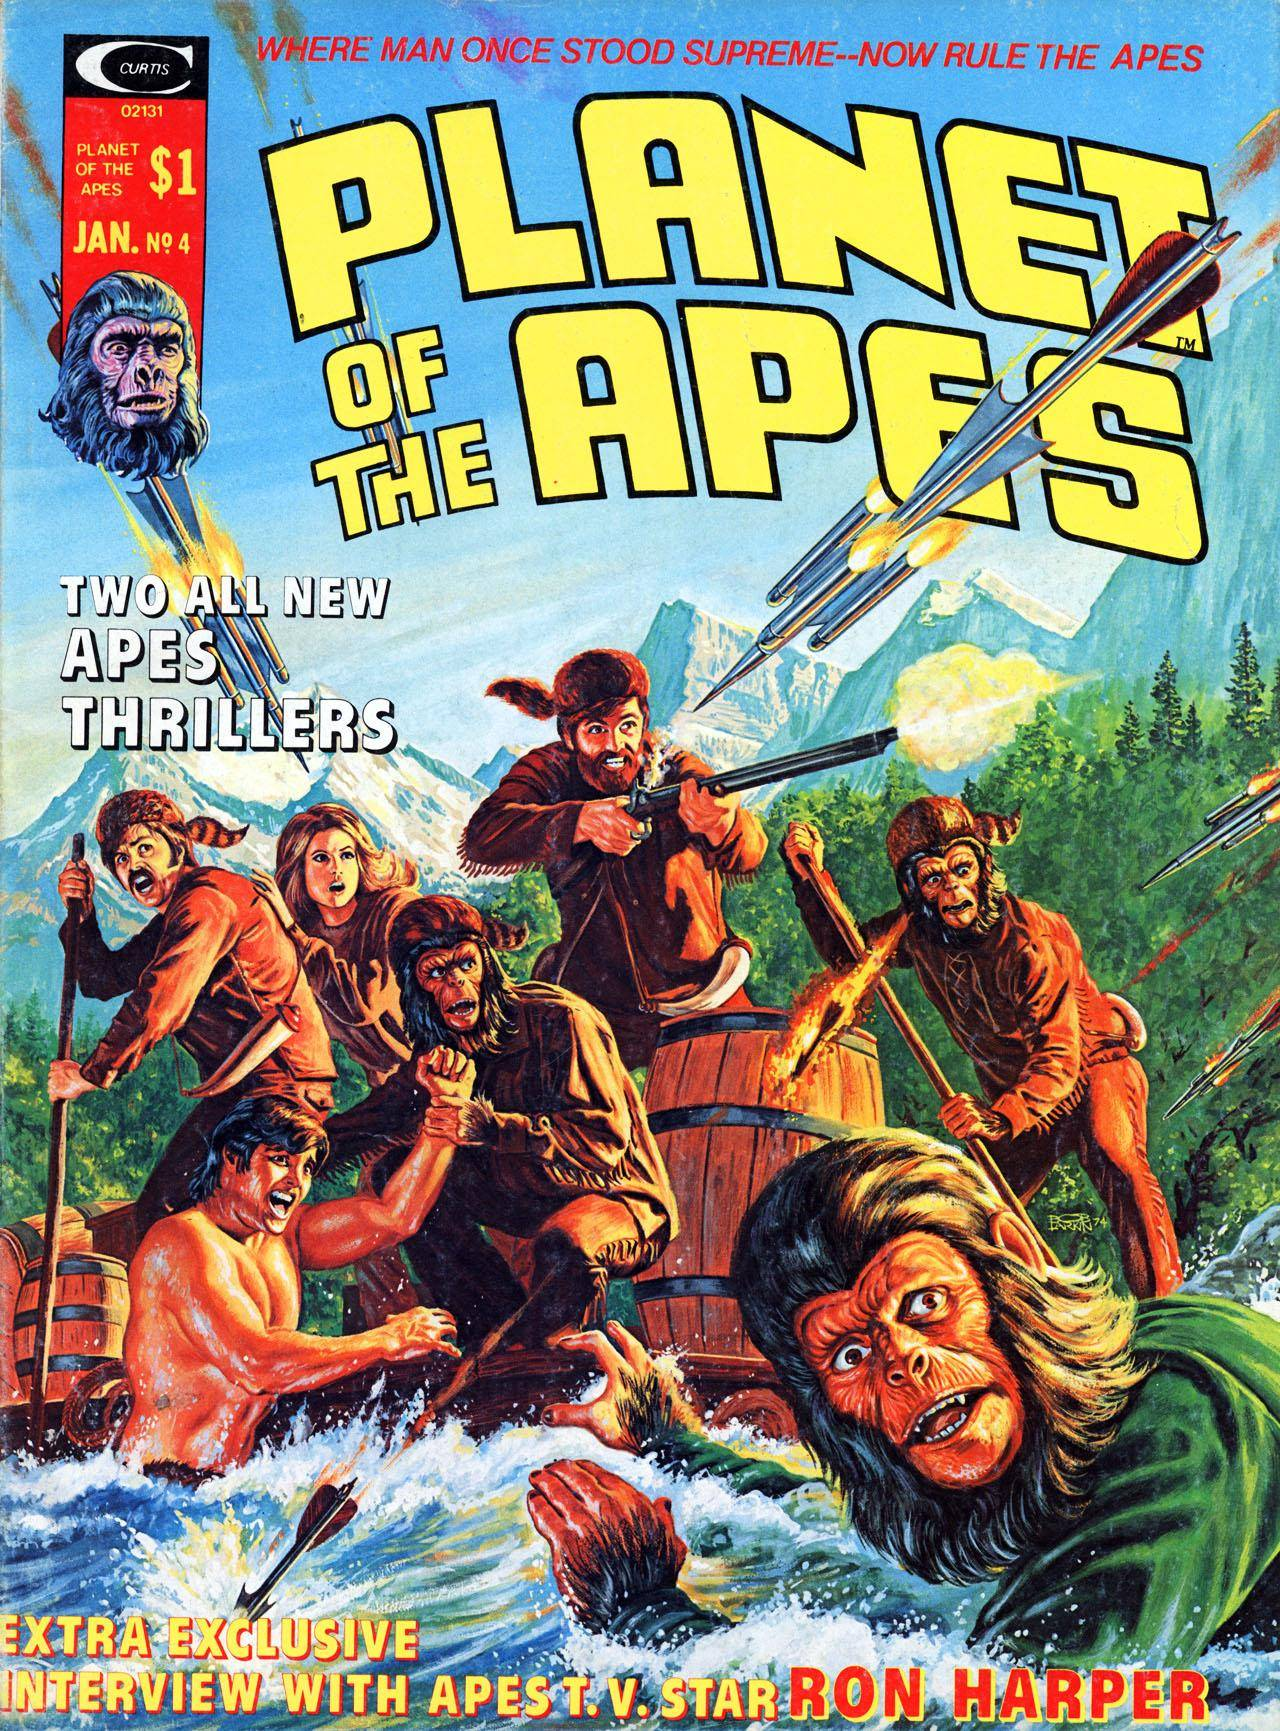 Planet of the Apes Magazine 004 (1975) (c2c) (Mal32 & Gambit)